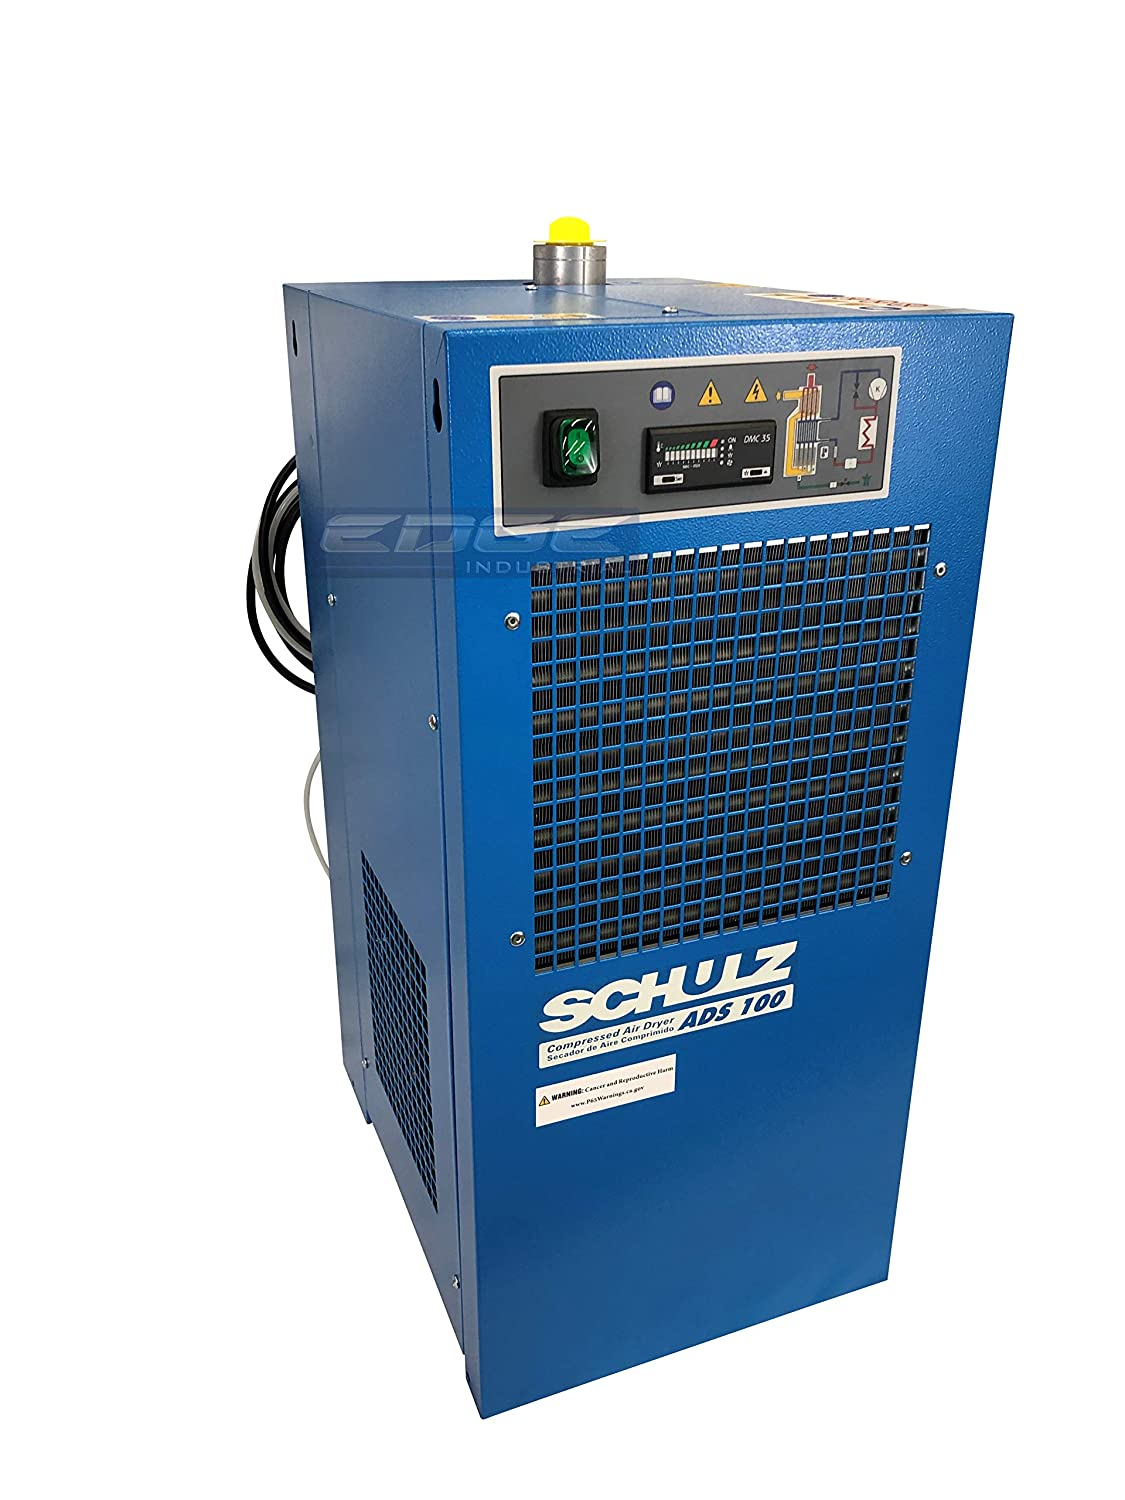 Compressed AIR Systems Schulz REFRIGERATED AIR Dryer for AIR Compressor with Regulator PRE-Filter 100 CFM Good for 20HP /& 25HP COMPRESSORS